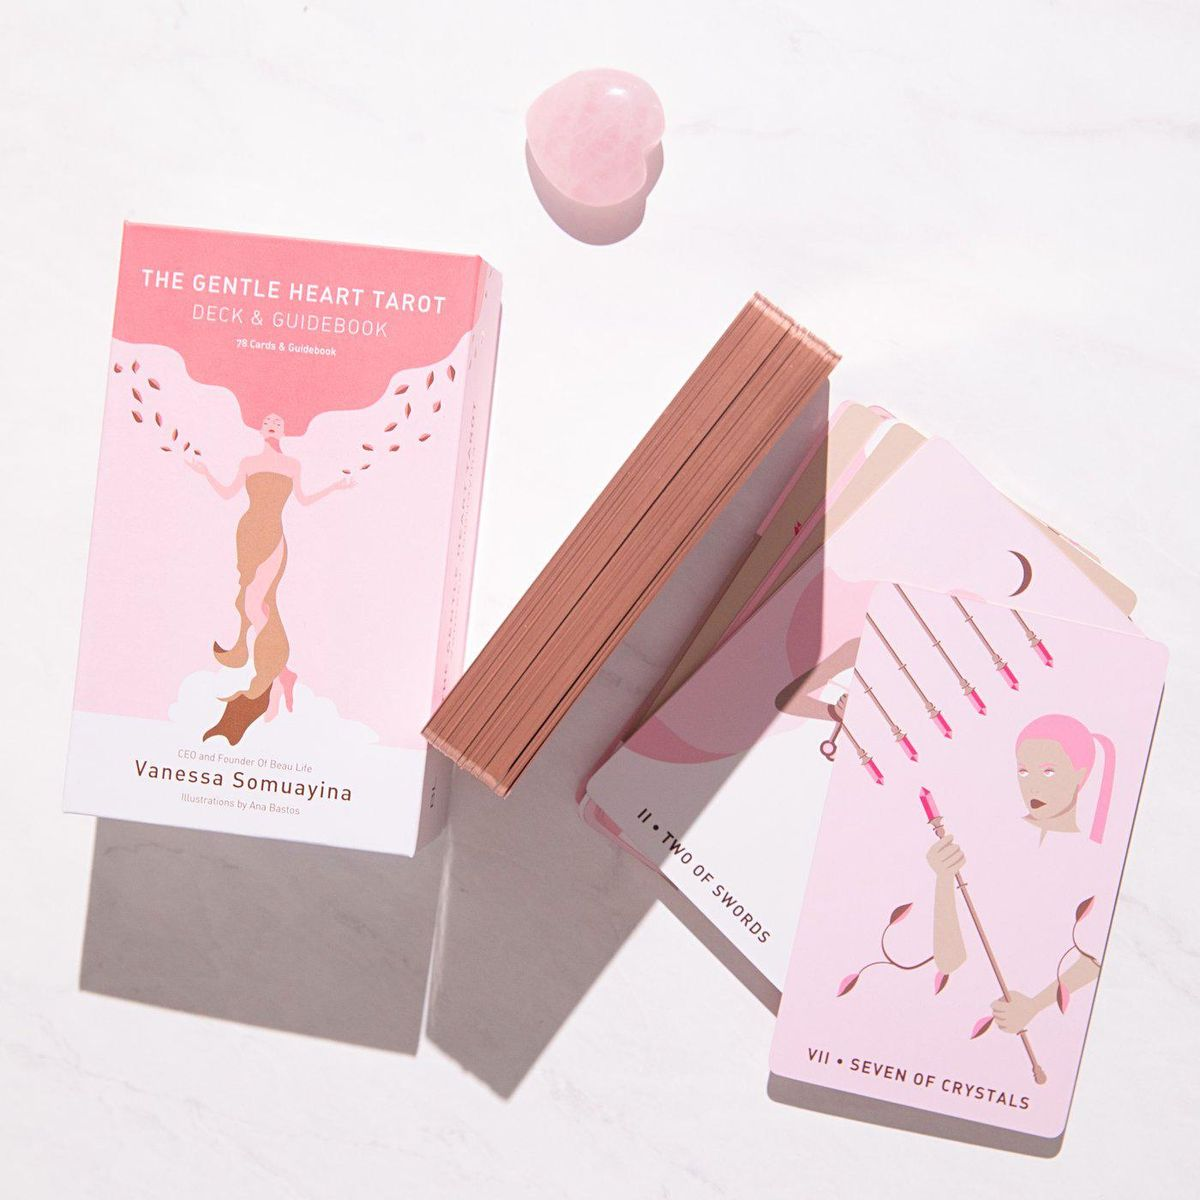 beau life switzerland the gentle heart tarot deck and guidebook with rose quartz heart